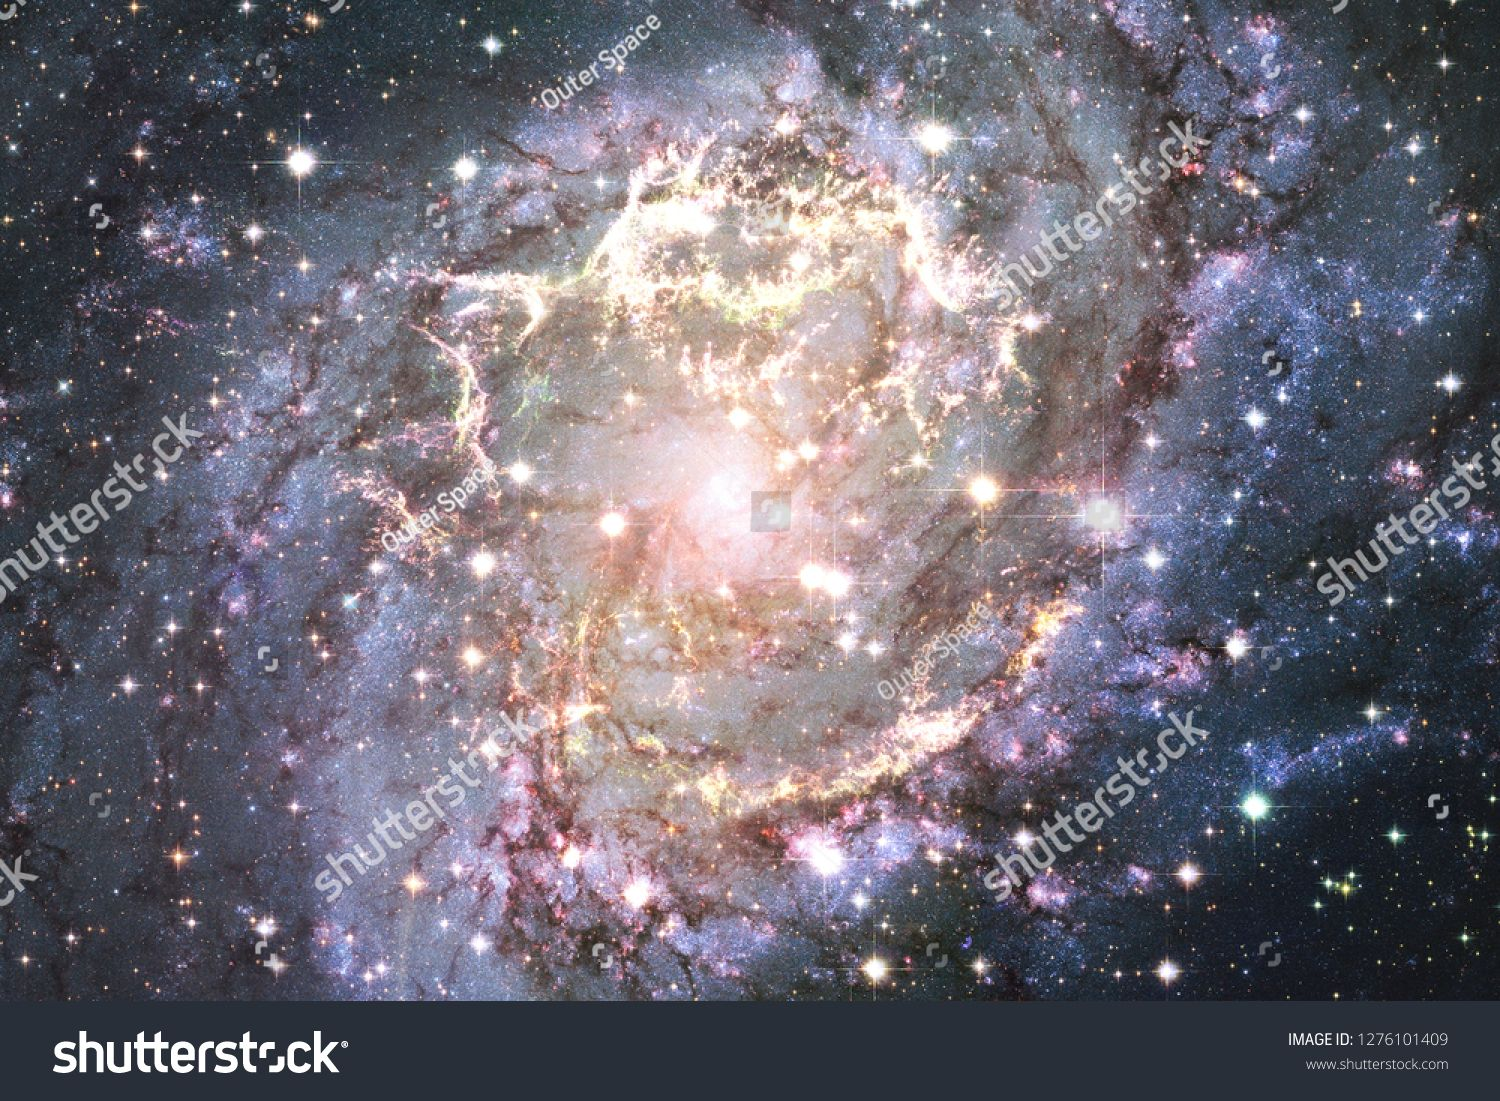 Cosmic Landscape Colorful Science Fiction Wallpaper With Endless Outer Space Elements Of This Image Furnished By Nasa A Cosmic Art Colorful Landscape Cosmic